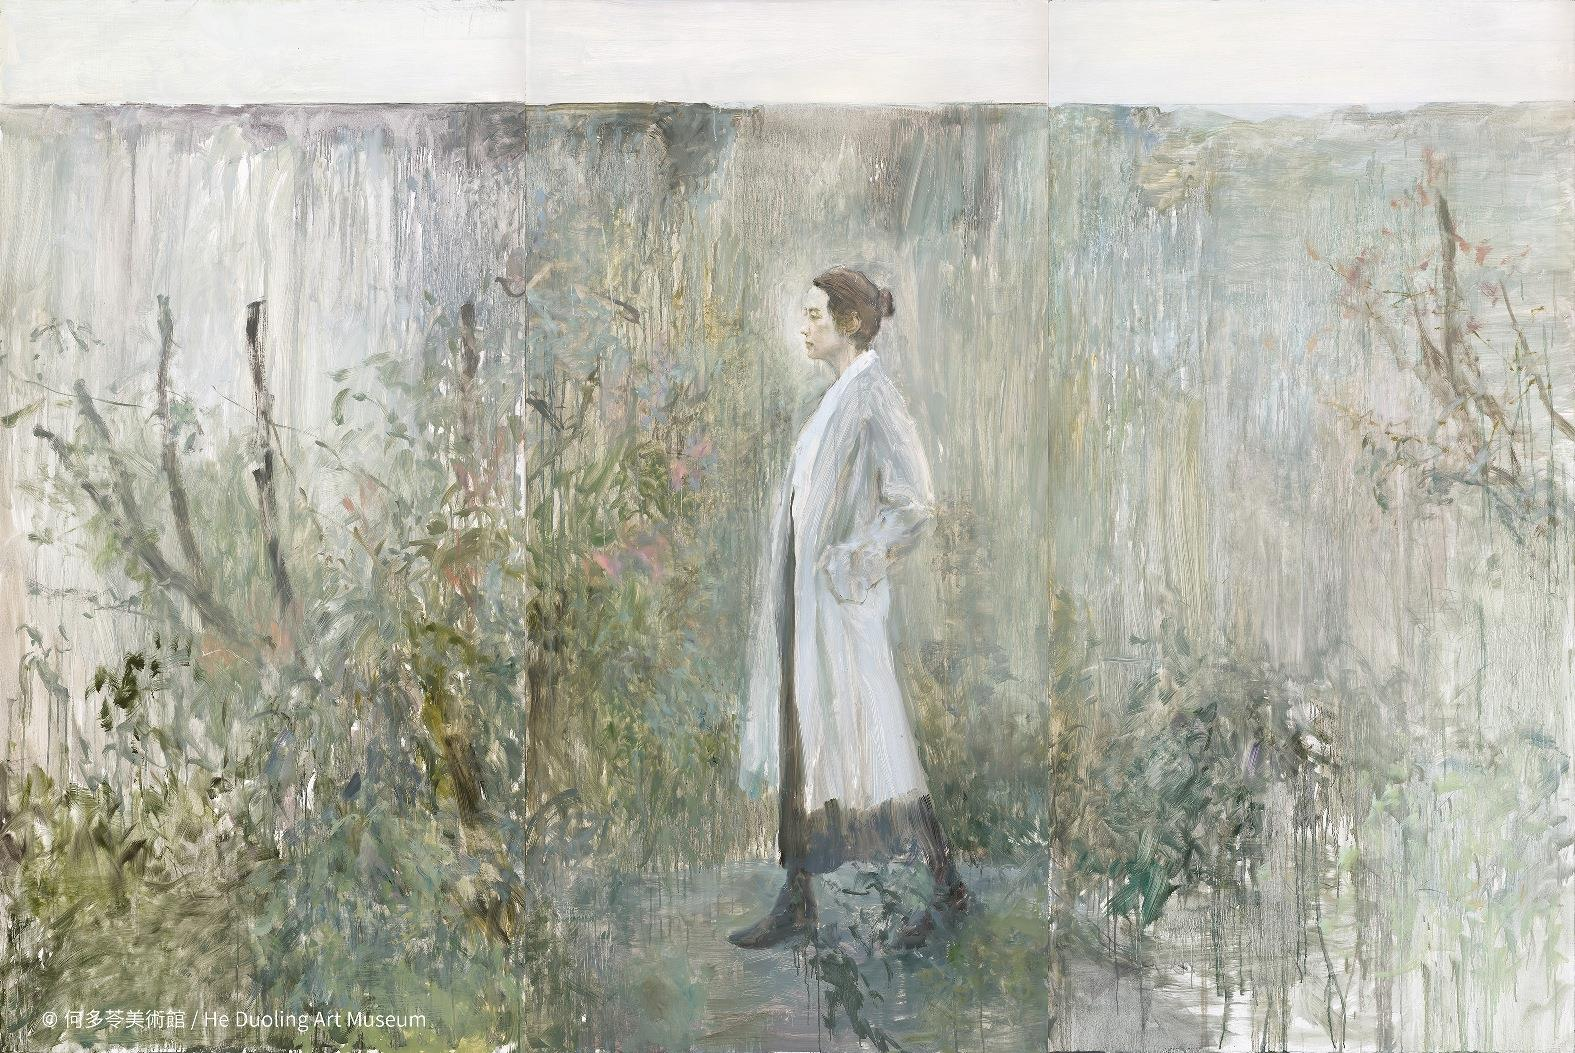 Wild Garden, Woman and Wall No. 3 (2019), by He Duoling